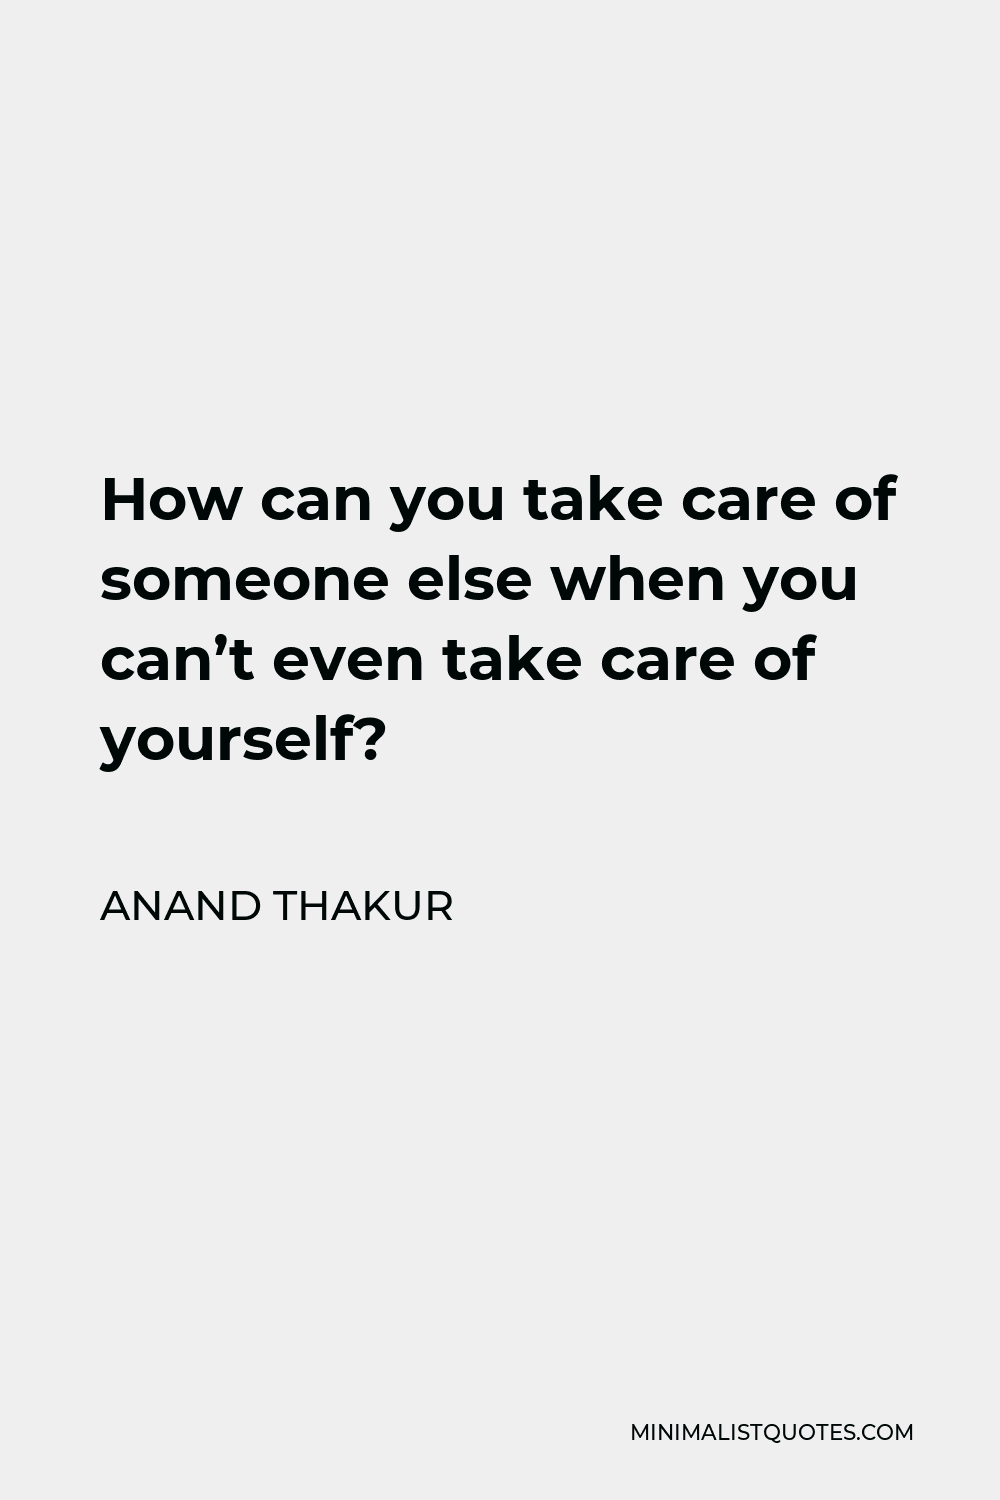 Anand Thakur Quote - How can you take care of someone else when you can't even take care of yourself?